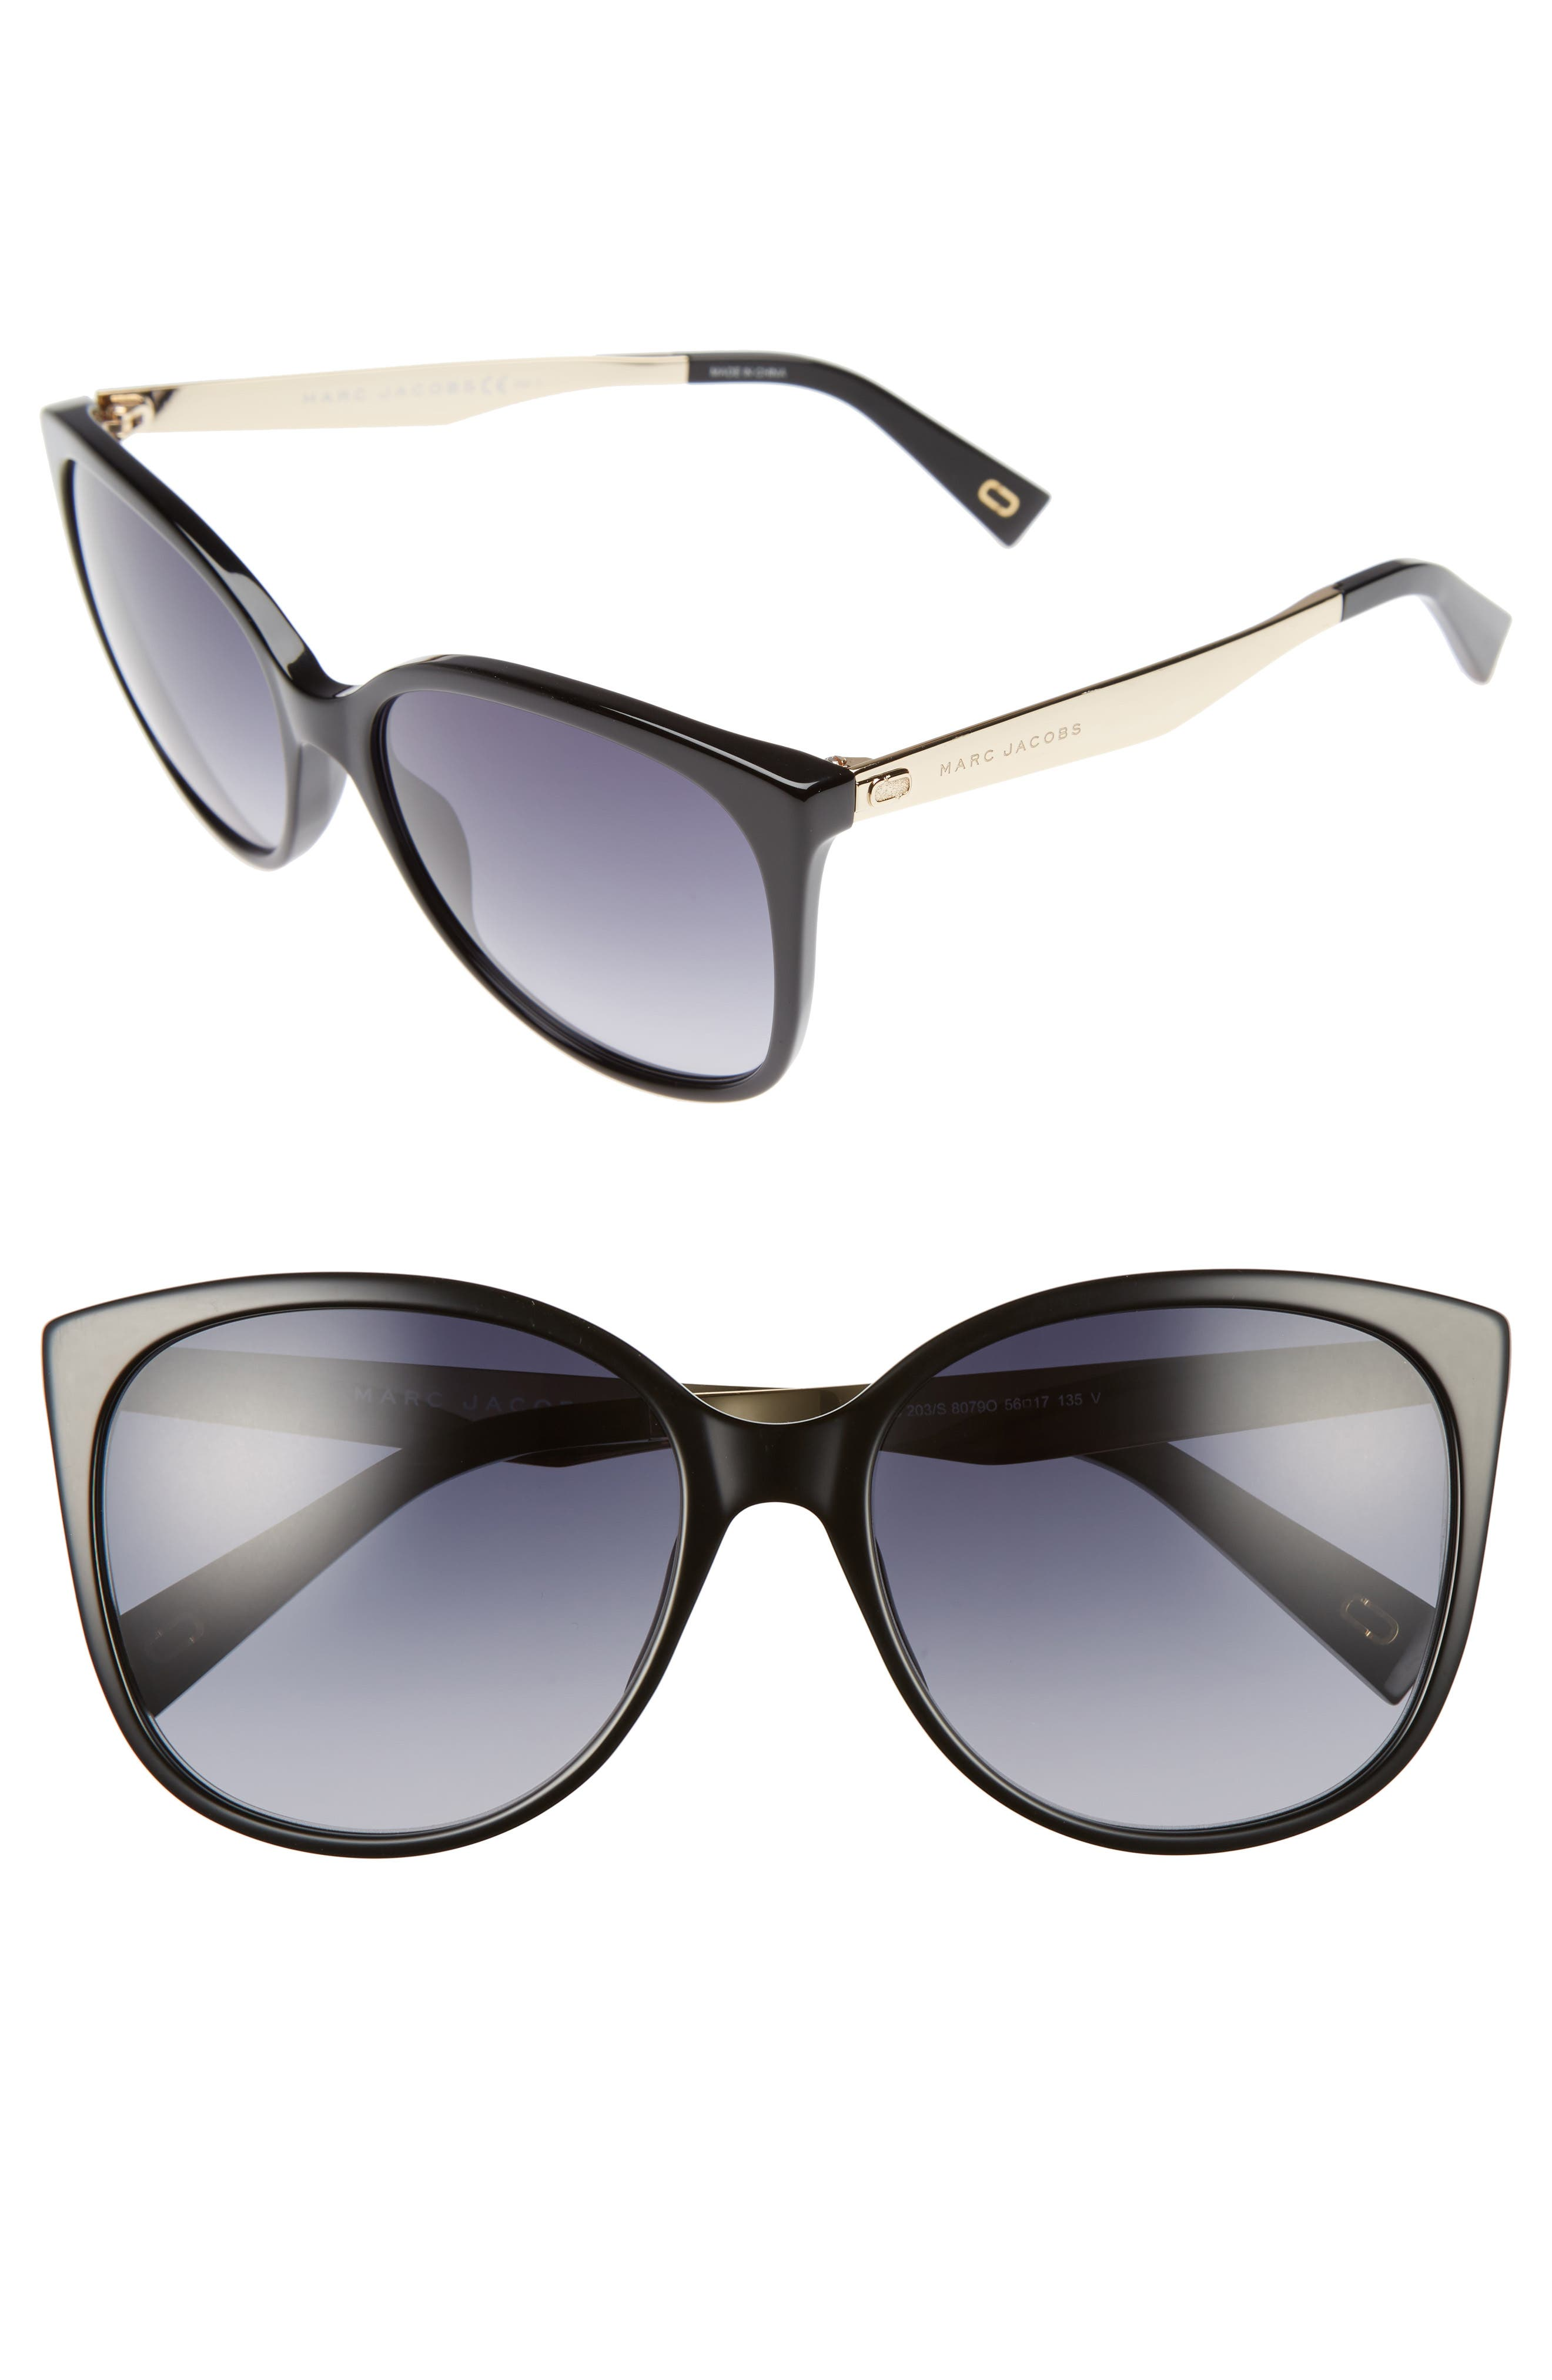 MARC JACOBS 56mm Gradient Lens Butterfly Sunglasses